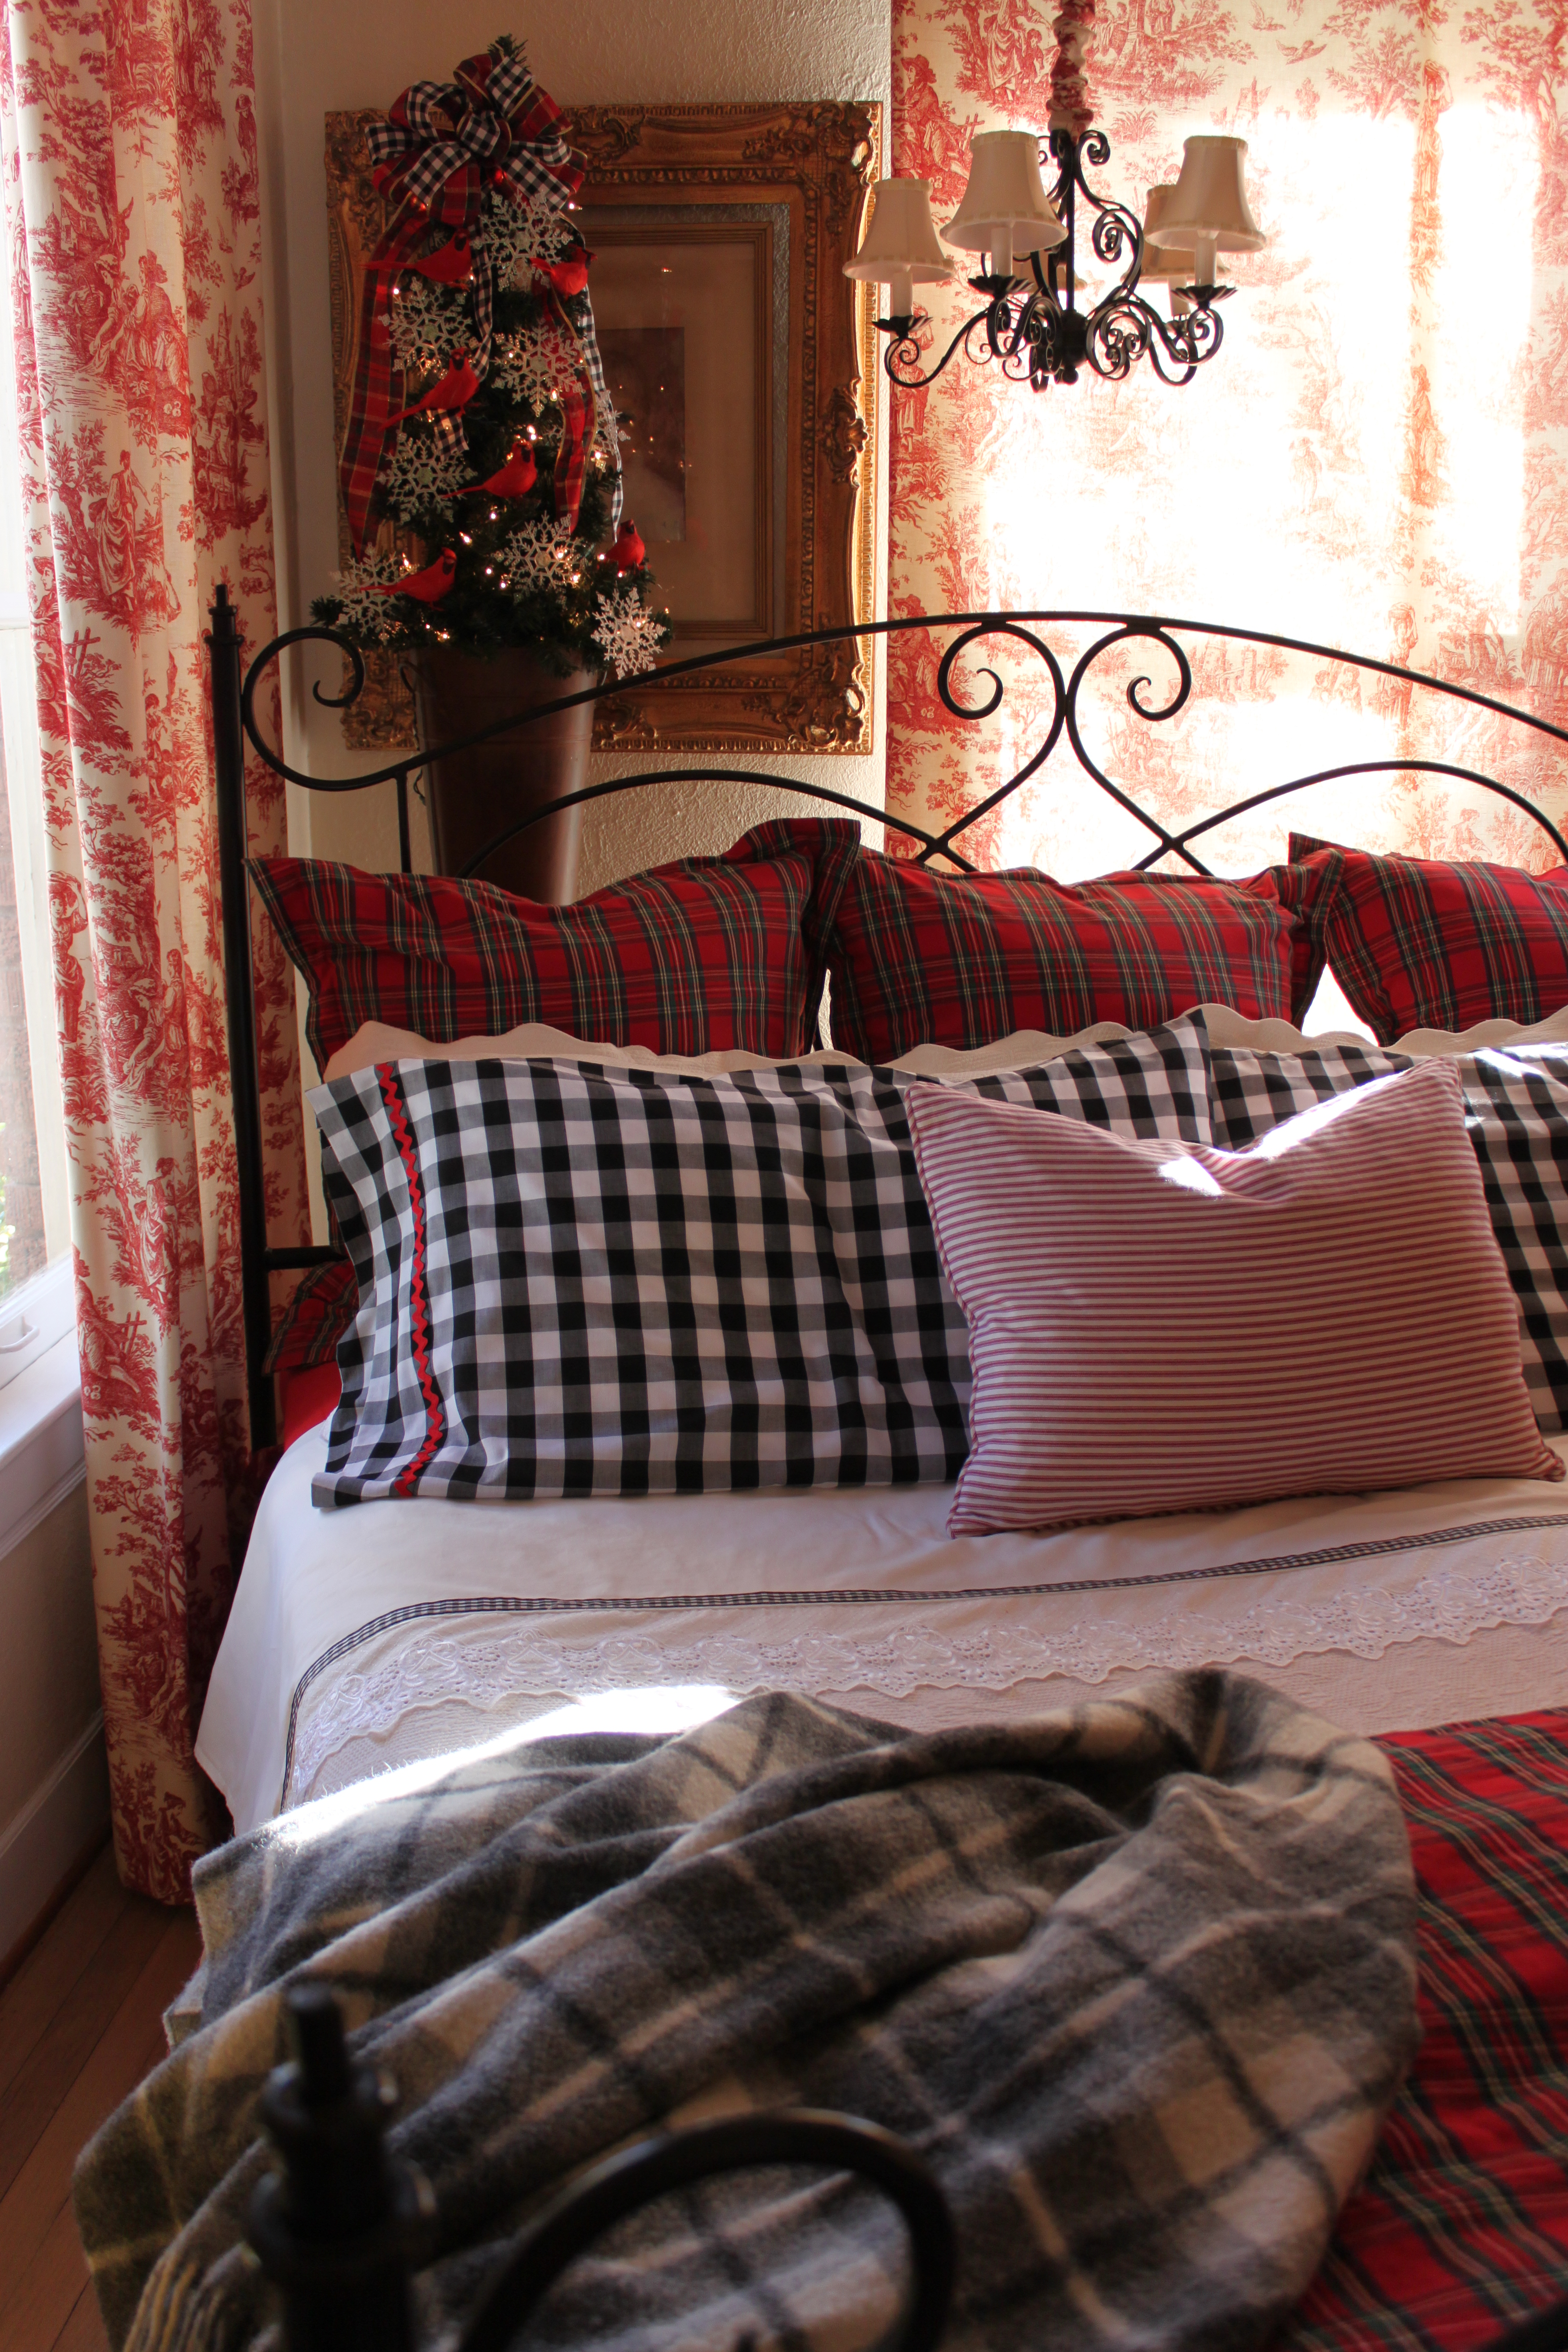 but somewhere a few years back the plaid bedding went to the attic and never came back down i mean seriously if you have so much christmas stuff that you